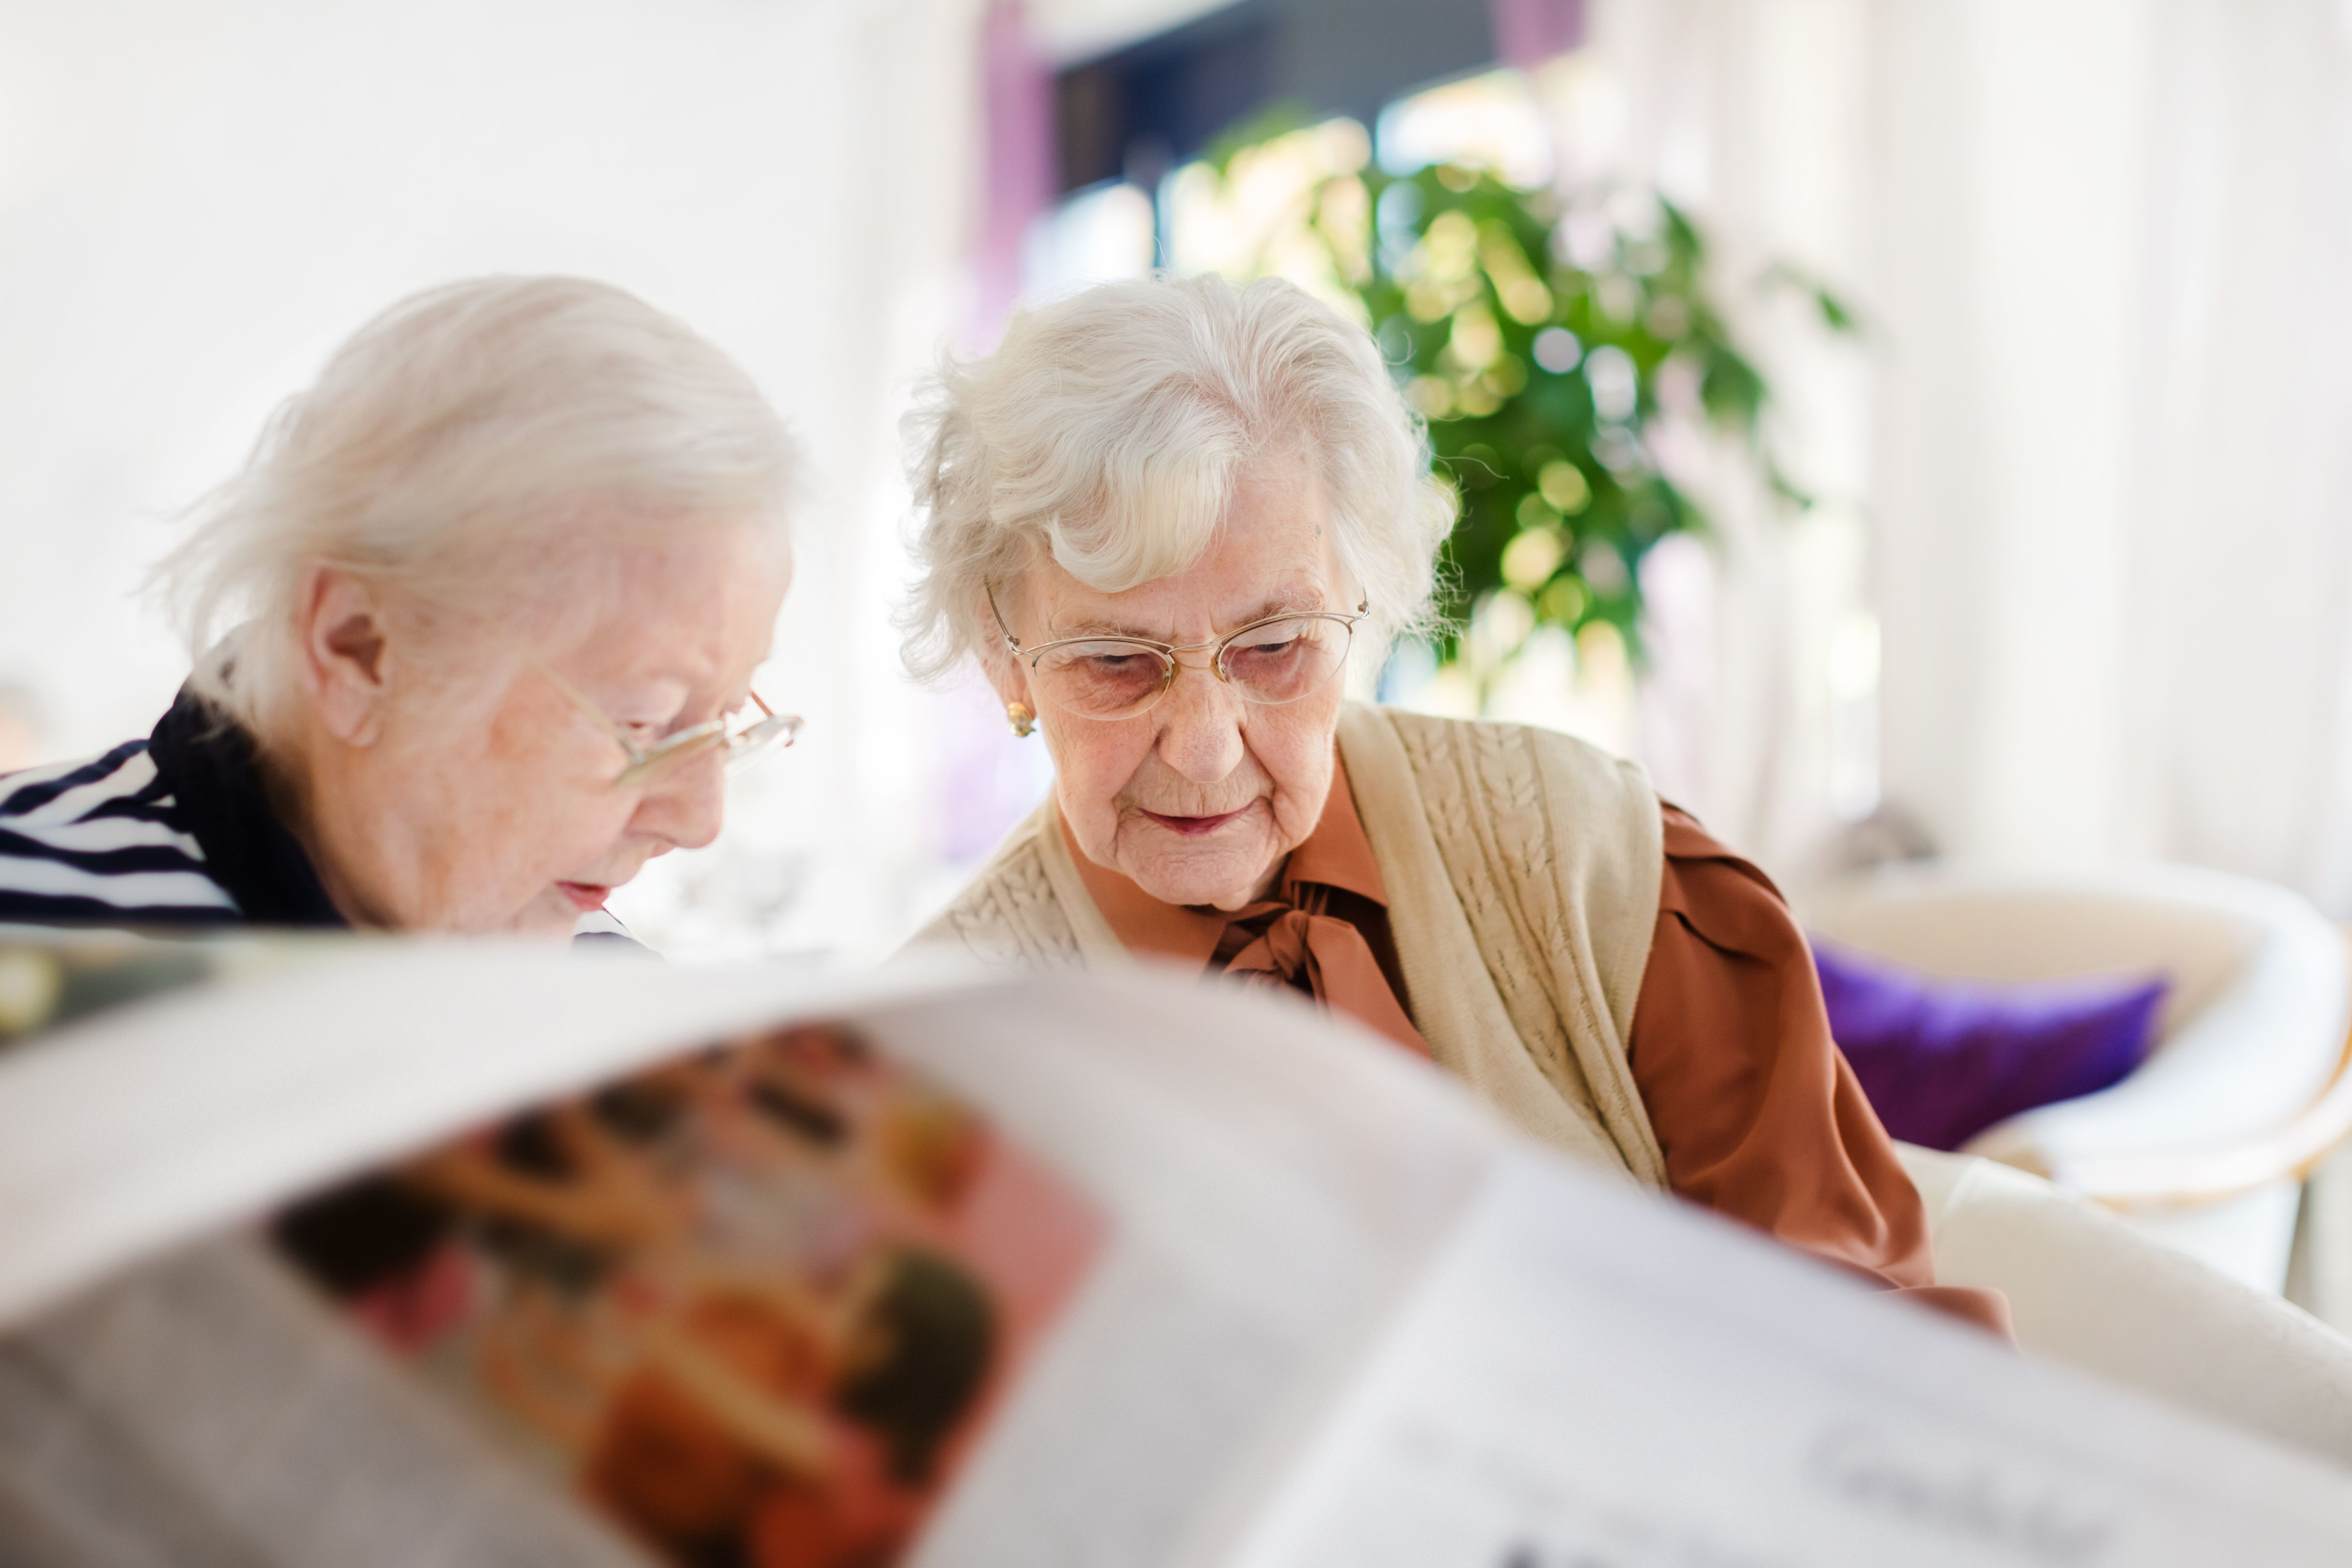 stages of life and the influence of age in health care from patient perspective Write a 500-750-word essay on the stages-of-life and the influence of age in health care from a patient's perspective.